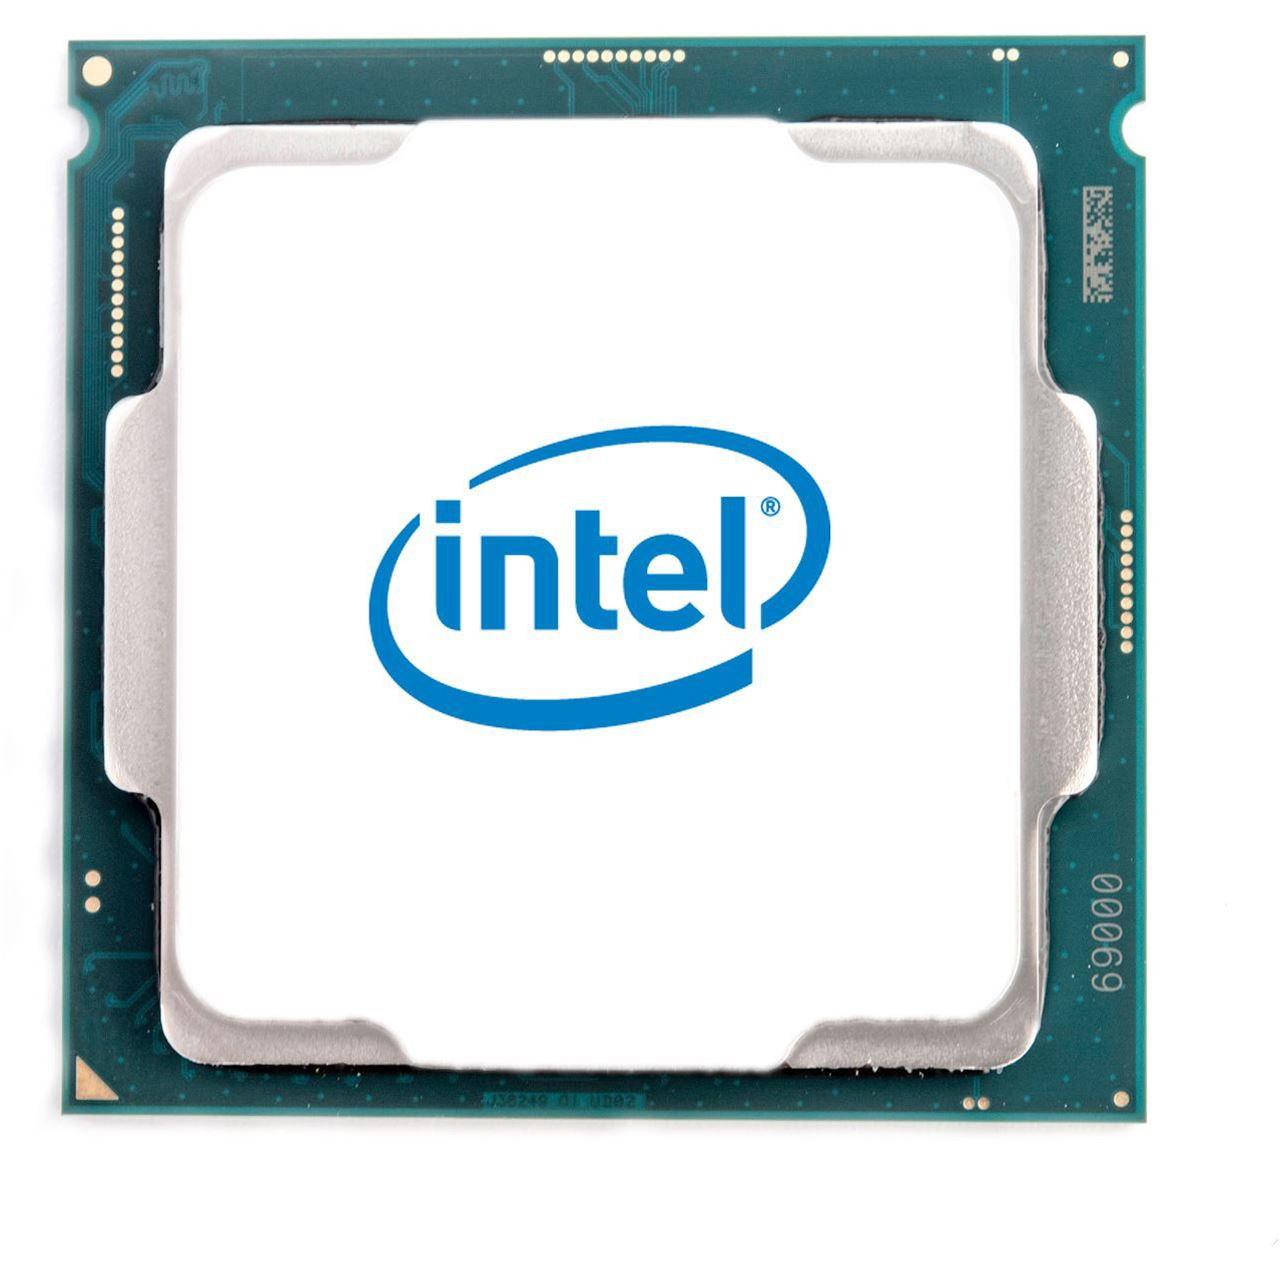 Intel Core i7-8700T processor 2.40 GHz 12 MB Smart Cache